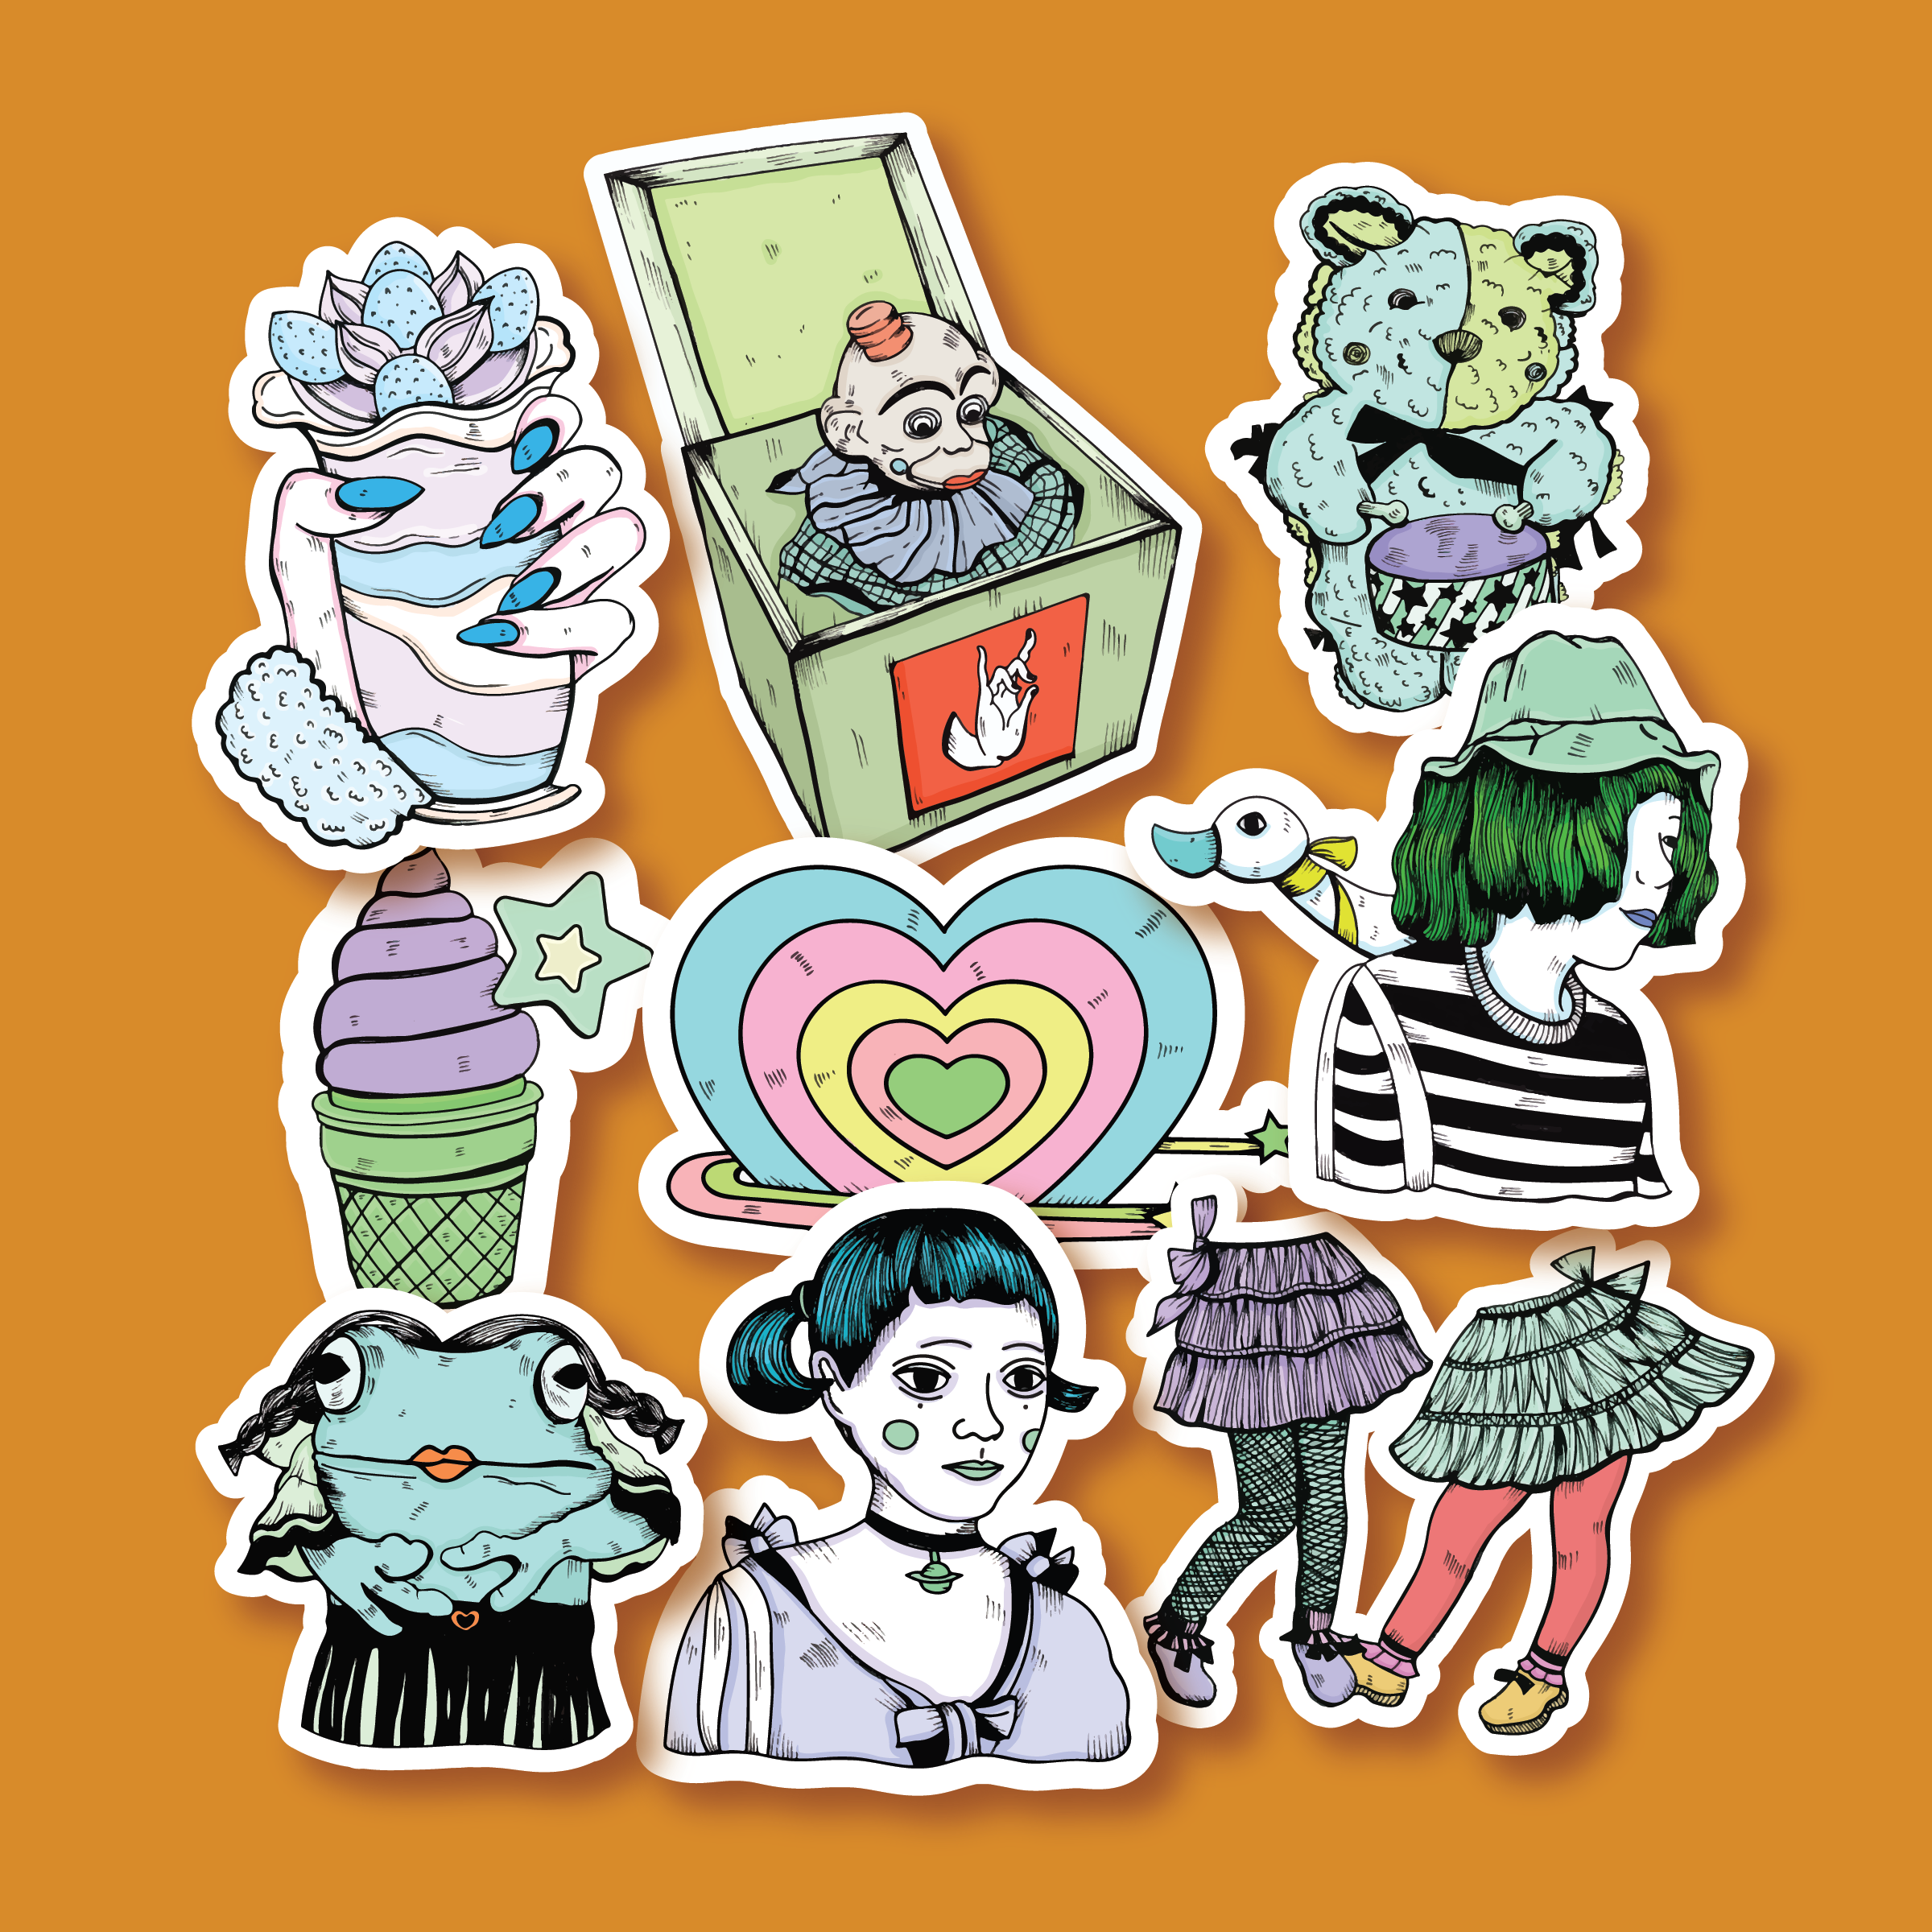 Tumblr style stickers cool sticker pack cute sticker set cute planner laptop stickers cute grunge kawaii vinyl stickers stickercutestickerstickerlove